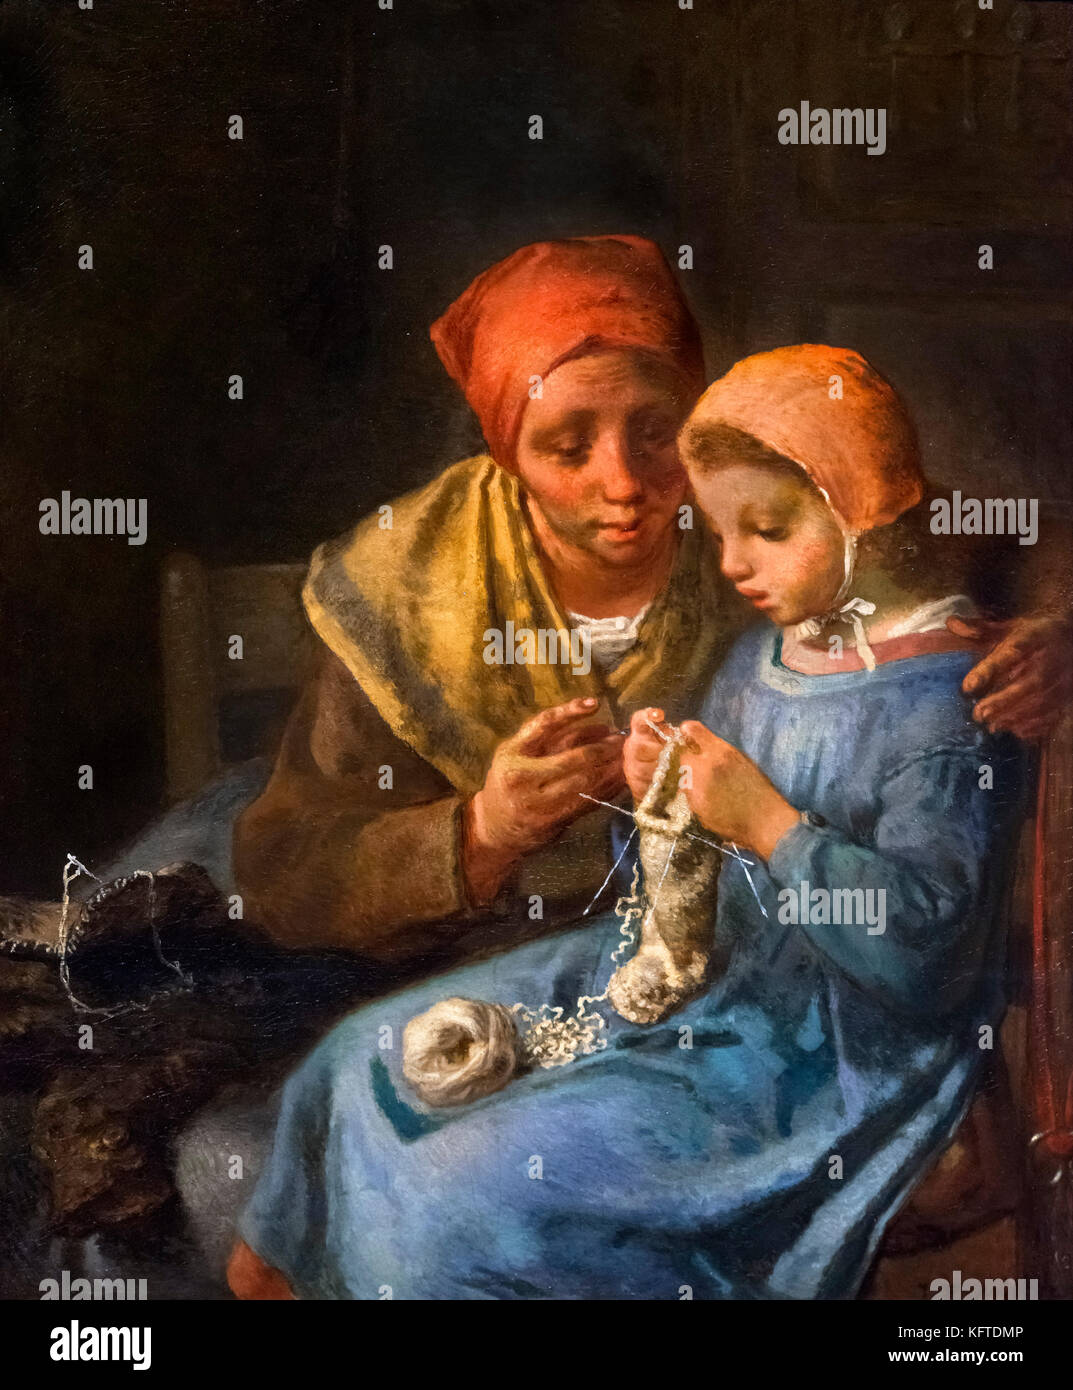 The Knitting Lesson by Jean-Francois Millet (1814-1875), oil on canvas, 1869 - Stock Image